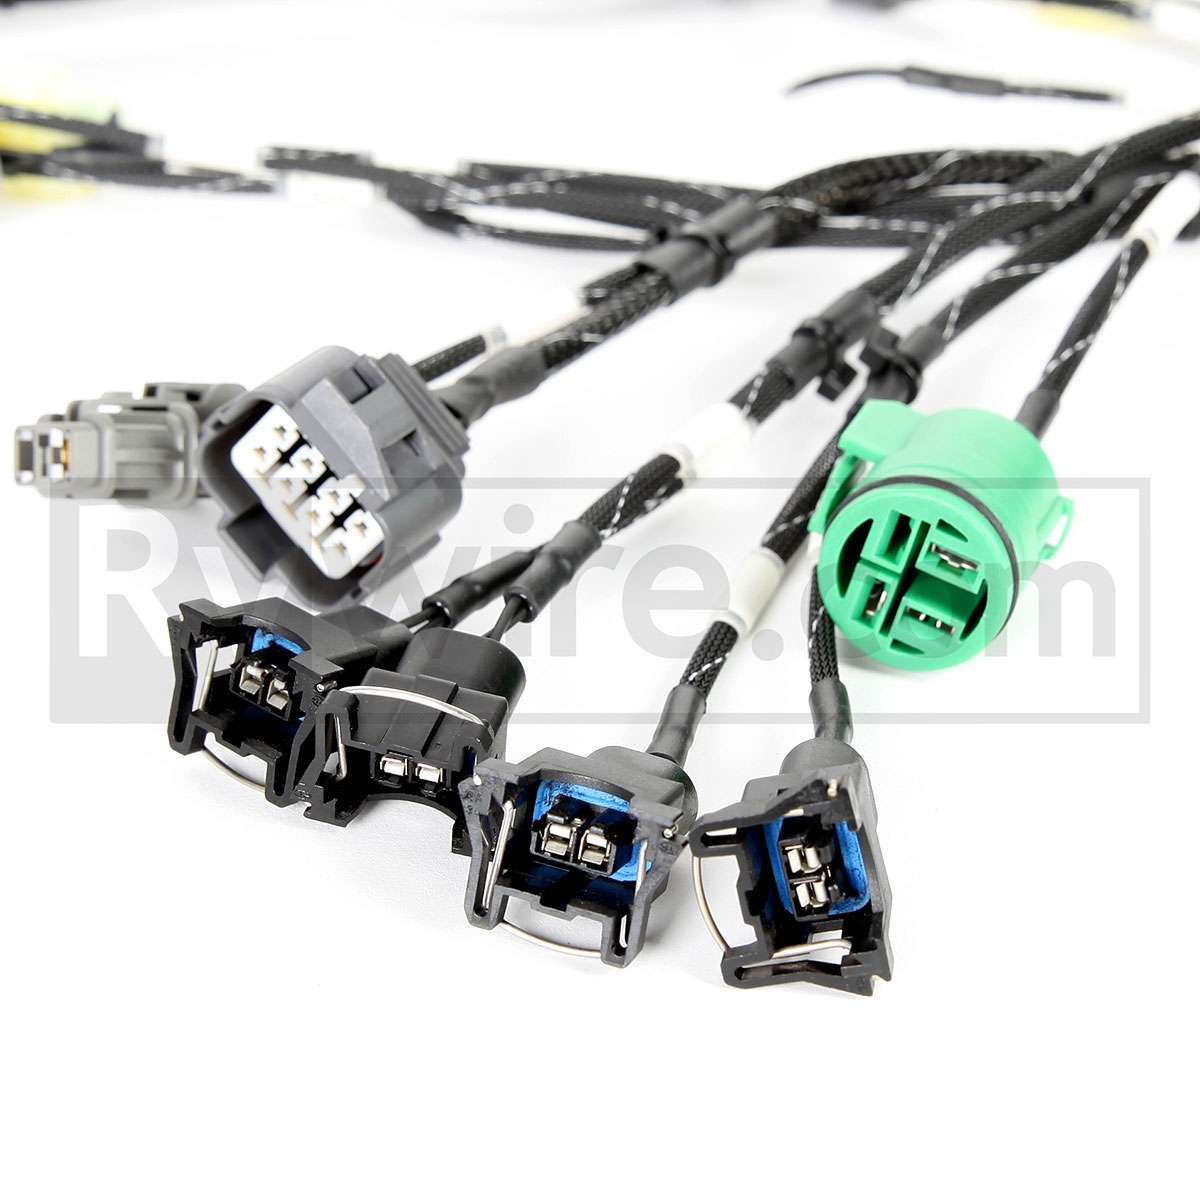 B1 Base 4?1403534211 rywire com budget d & b series tucked engine harness what gauge wire for engine harness at couponss.co